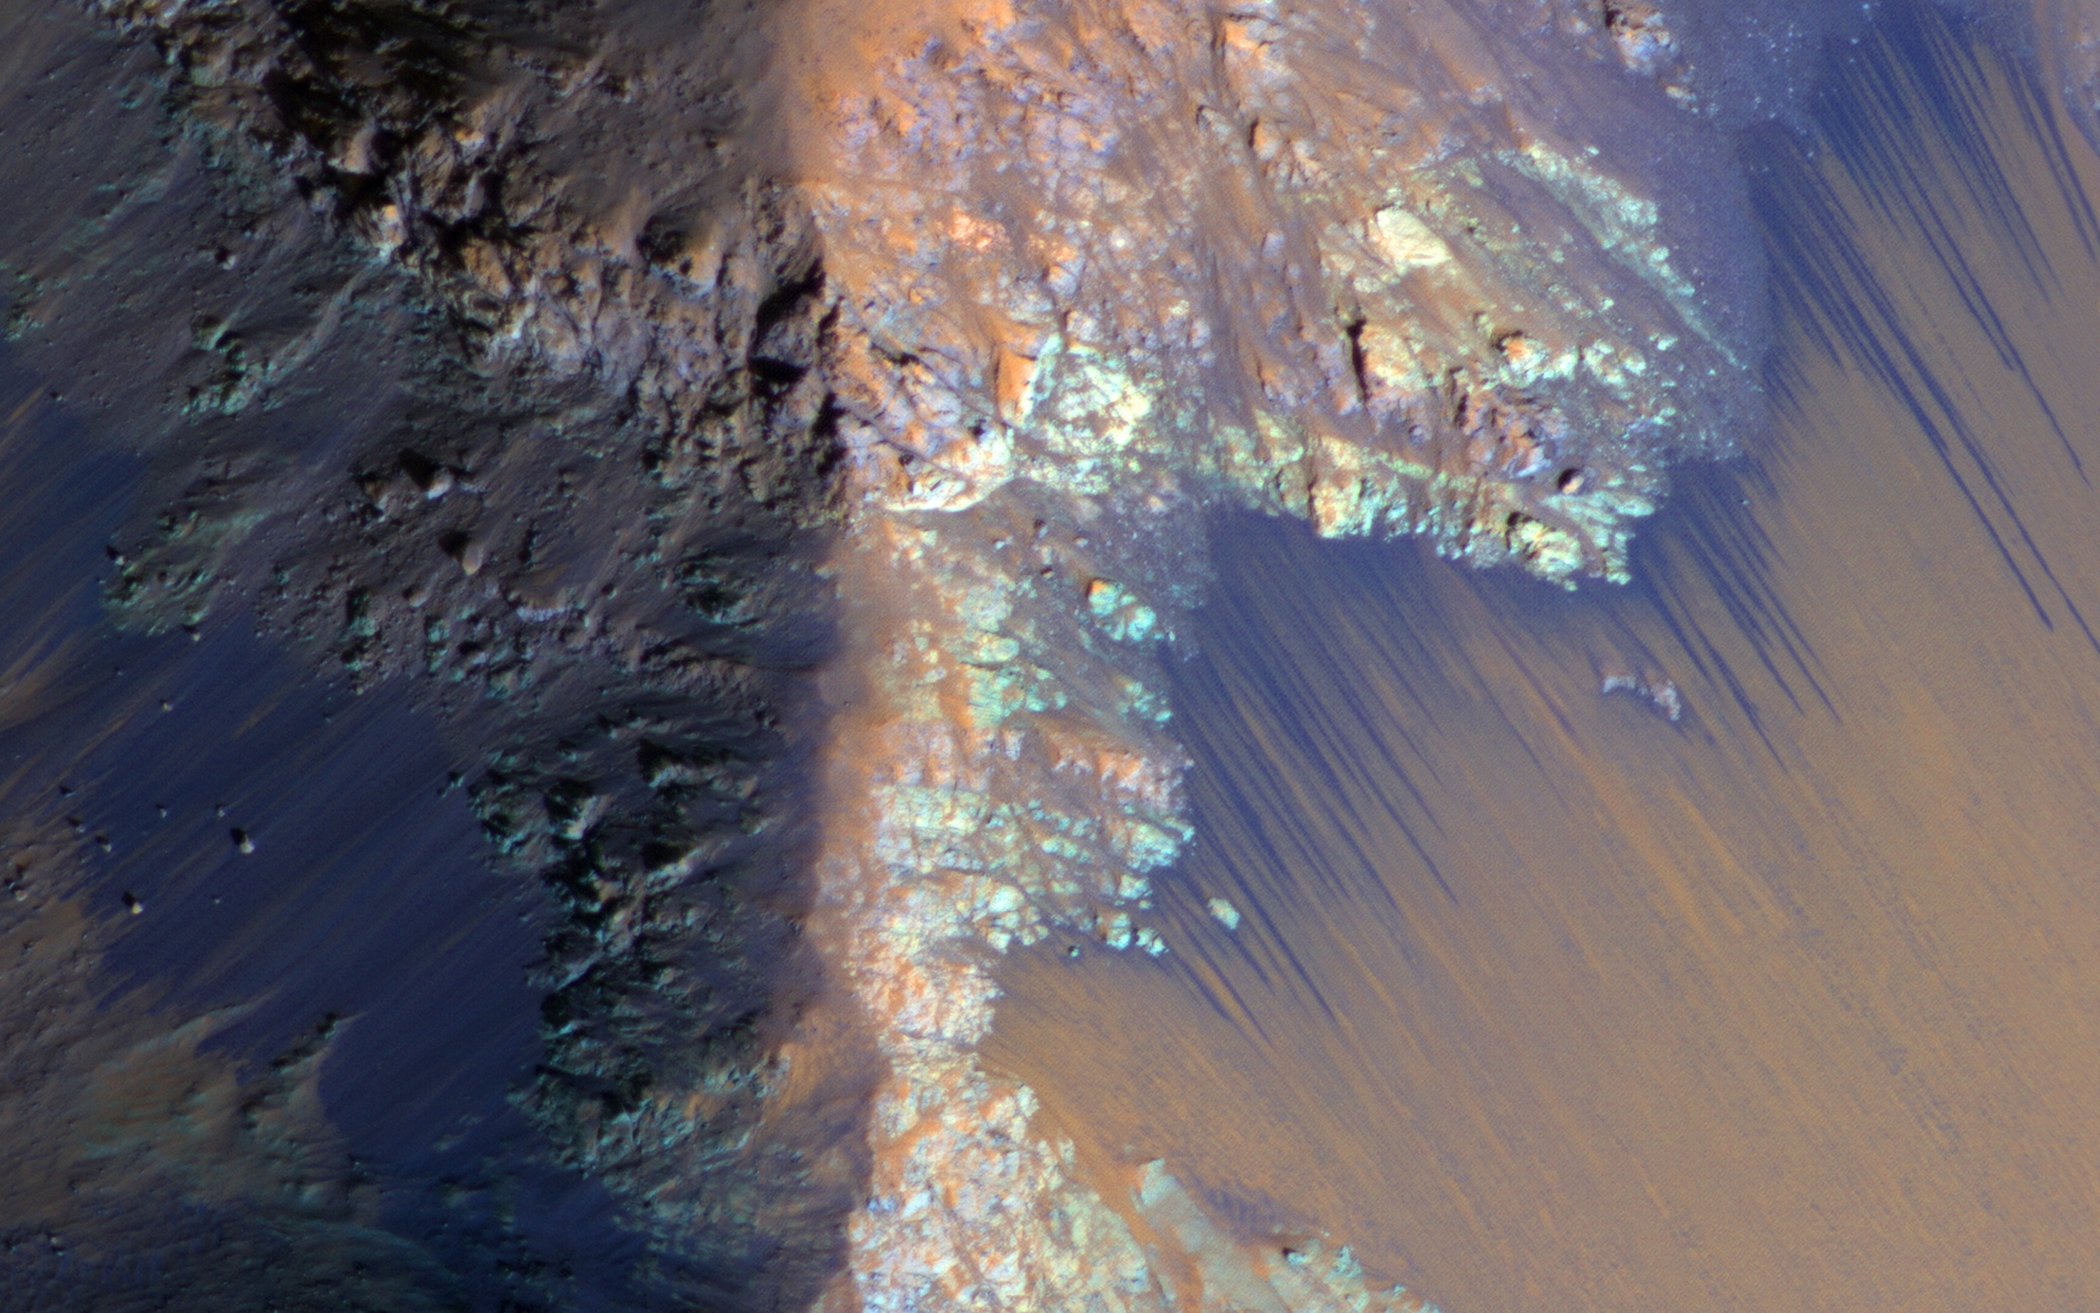 RSL may be due to active seeps of water. These dark flows are abundant along the steep slopes of ancient bedrock in Coprates Chasma. Acquired on Dec. 31, 2013.